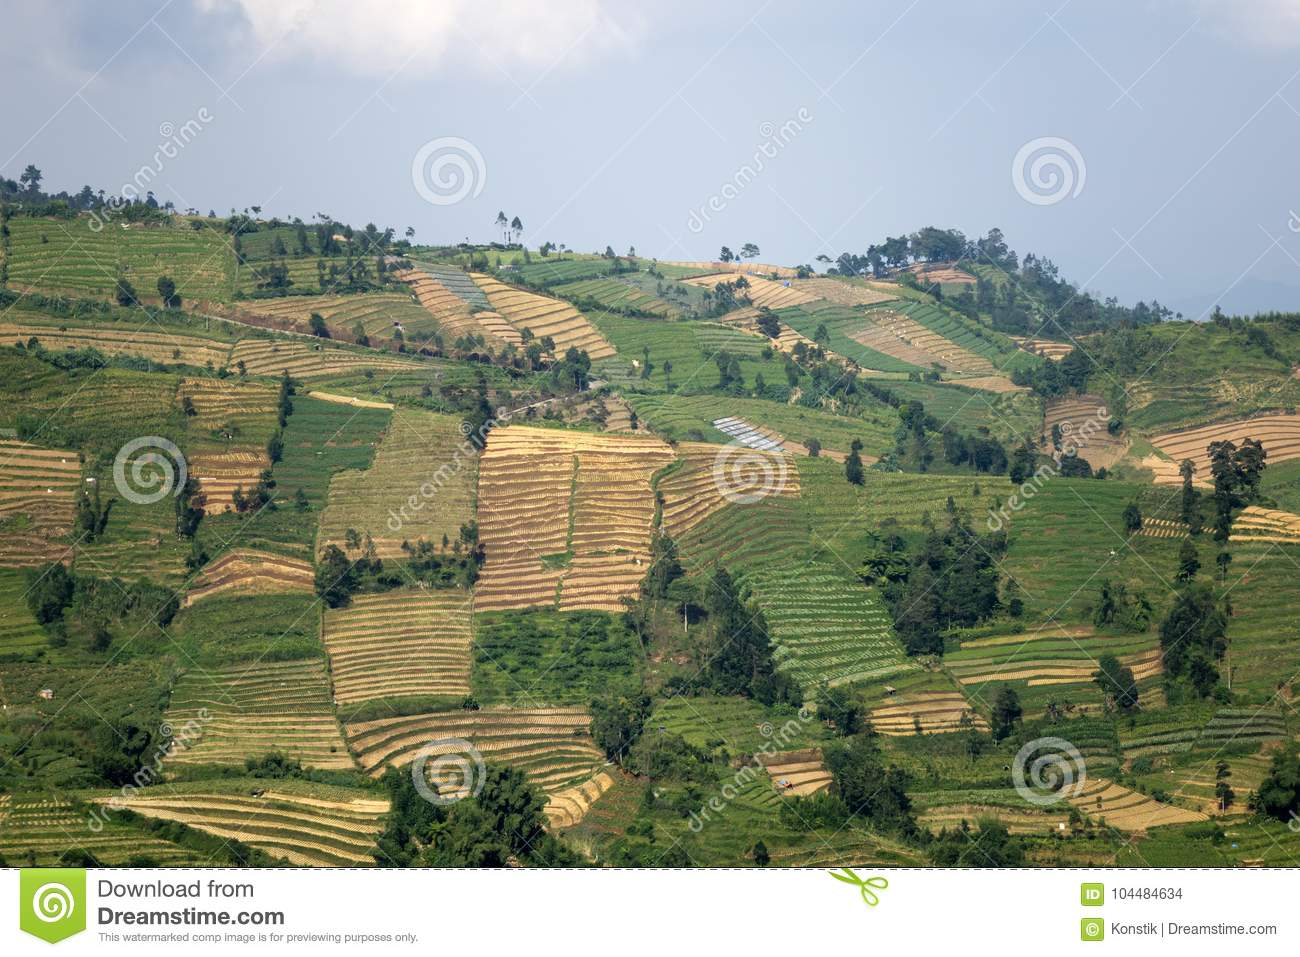 Java, Indonesia. hills with plots of rice fields of different degree of a maturity